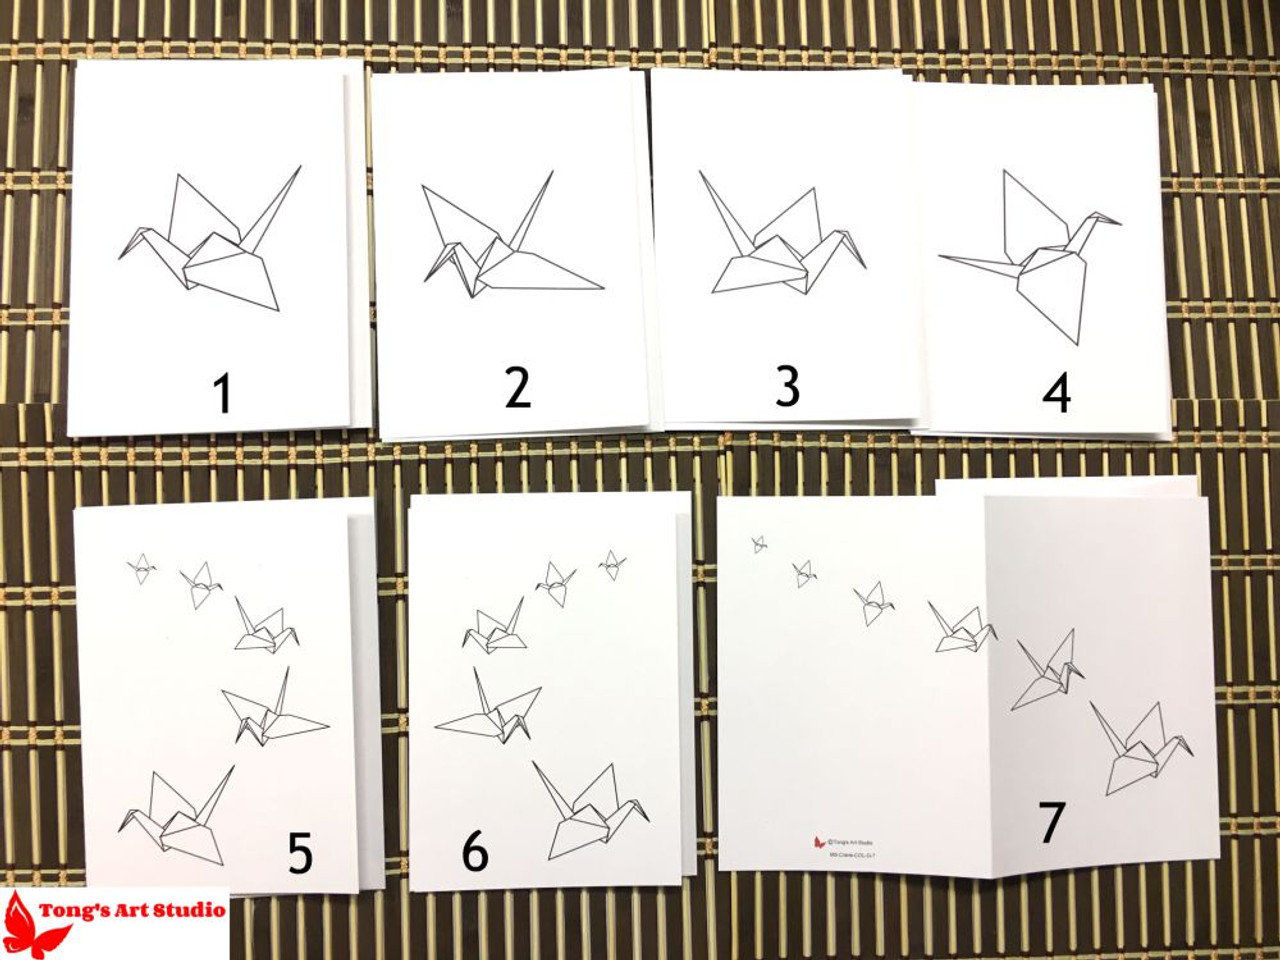 Coloring crane greeting card 7 coloring crane greeting card m0 5 x 7 cards with envelopes m4hsunfo